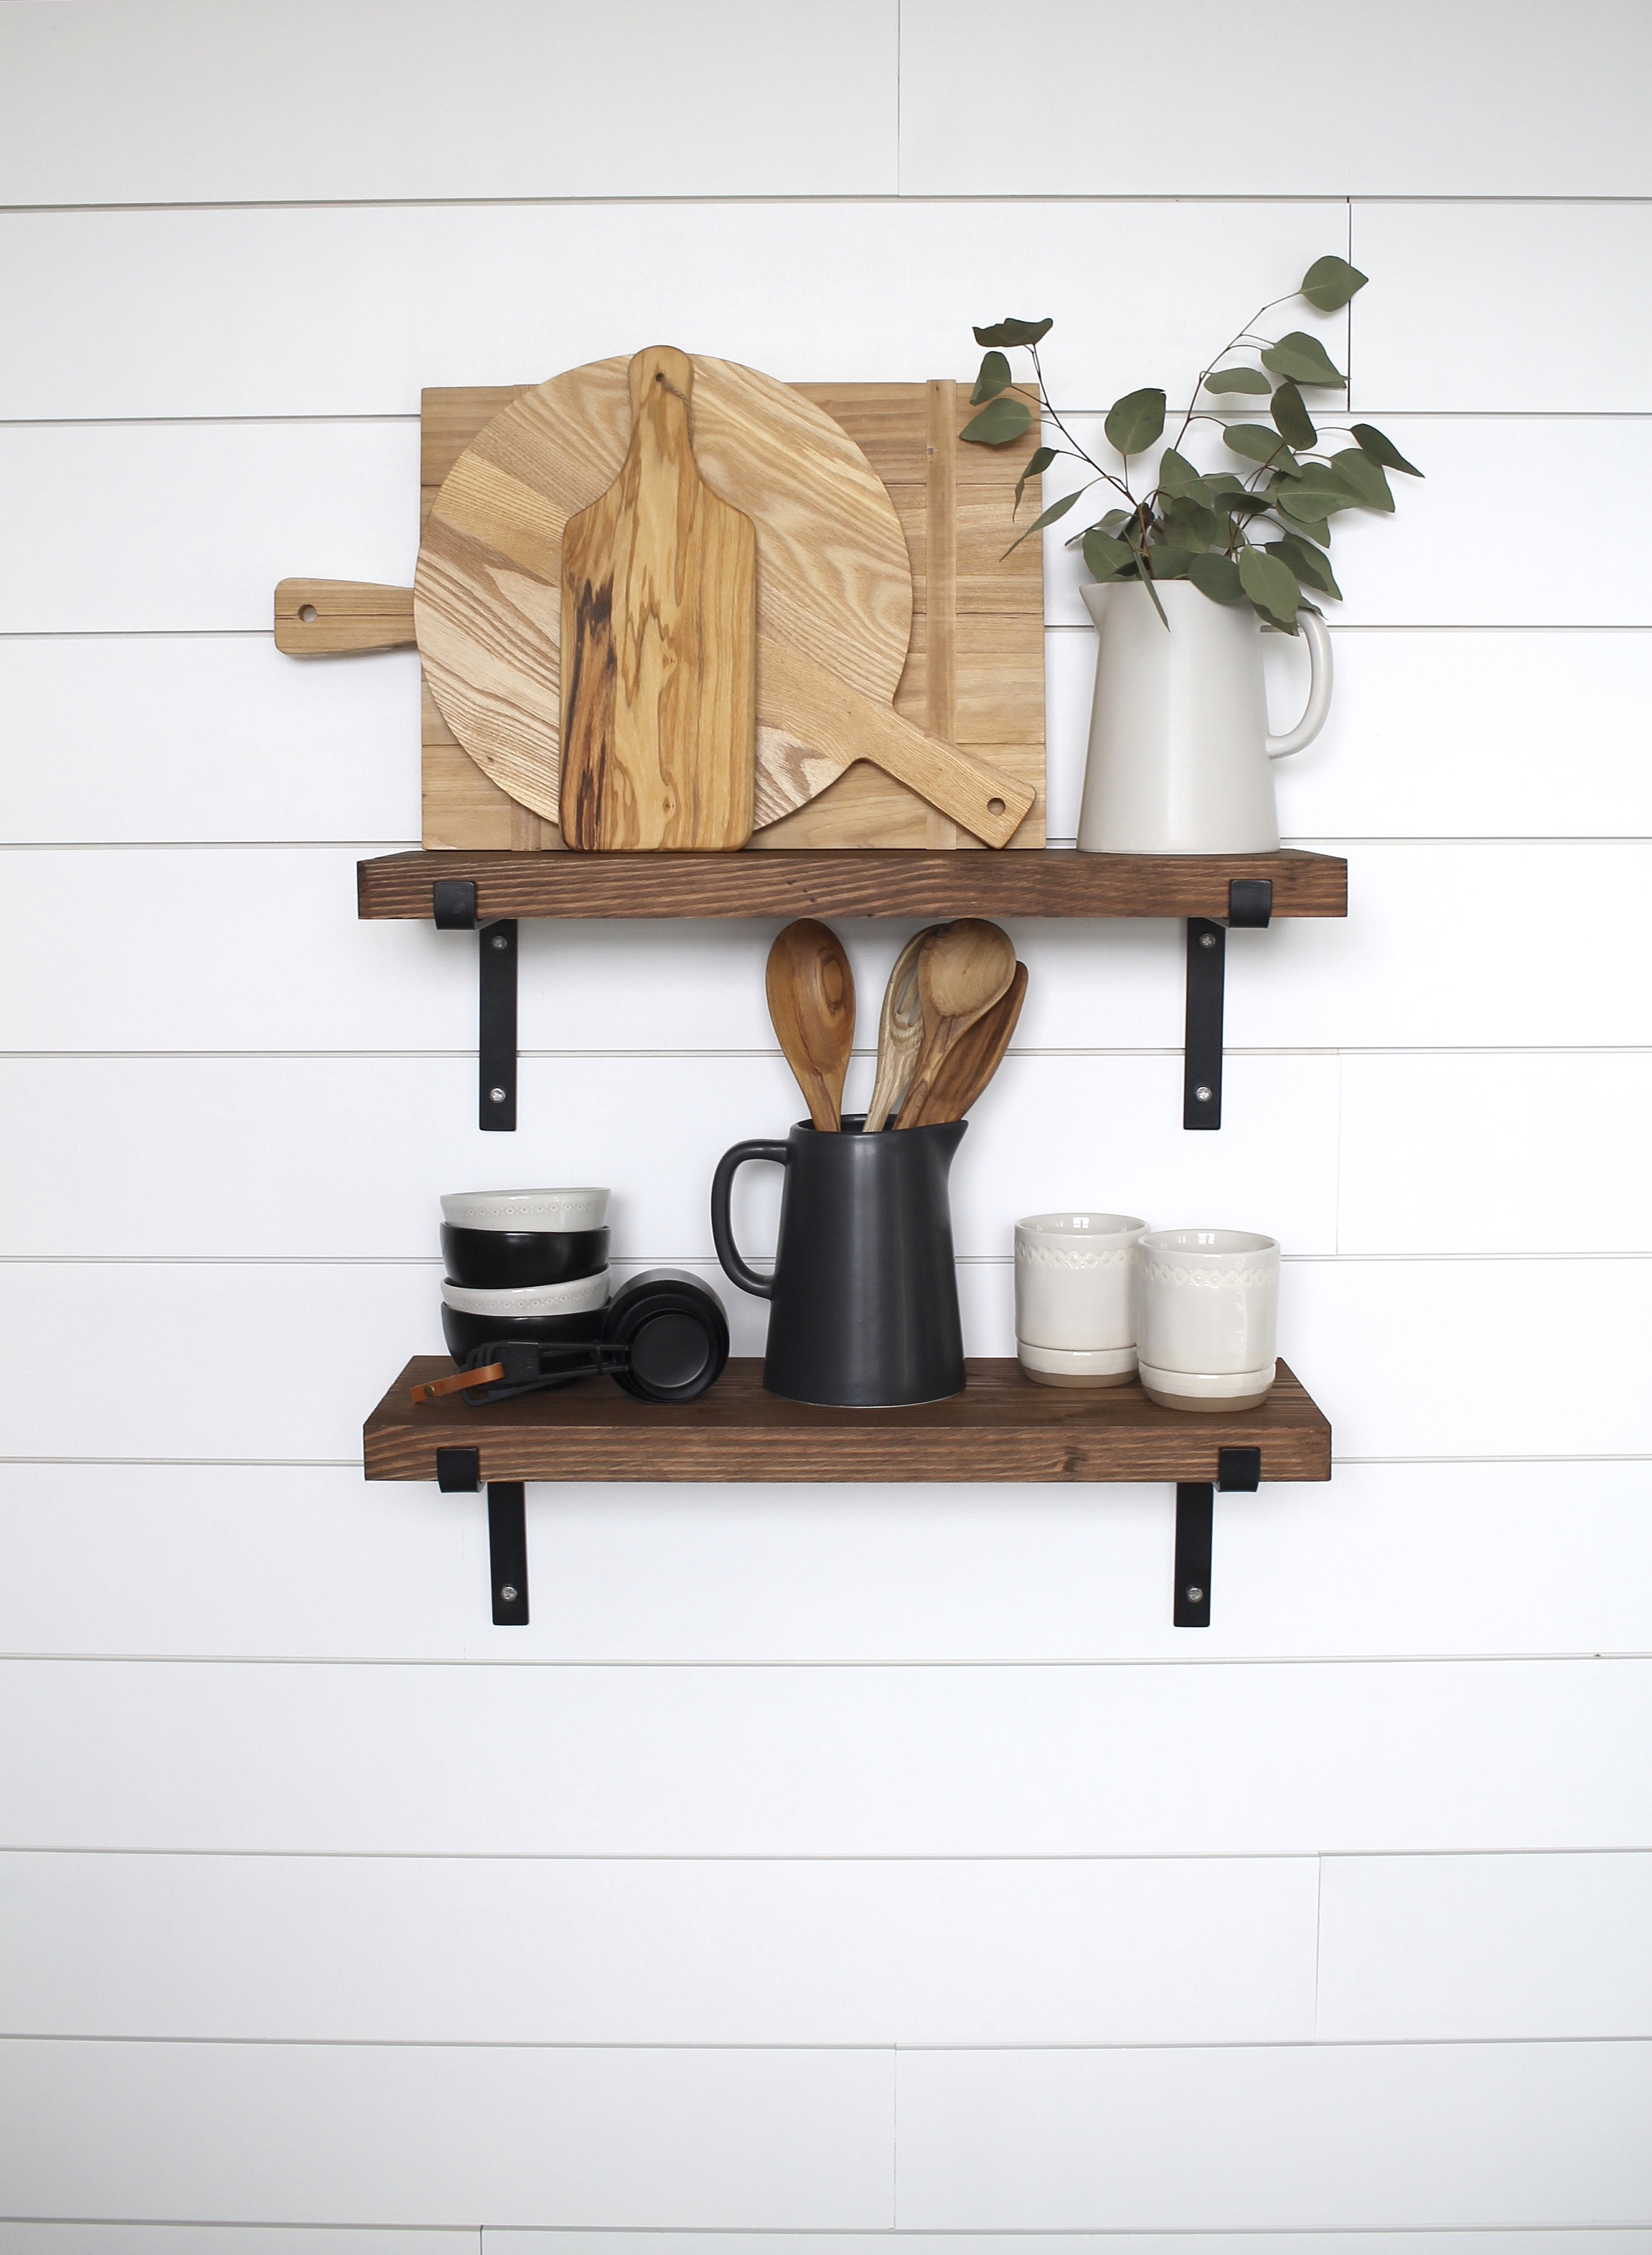 black metal bracket shelves floating open shelving etsy fullxfull shelf brackets for wall mounted folding desk table glass support fittings coat hanger the bathroom storage